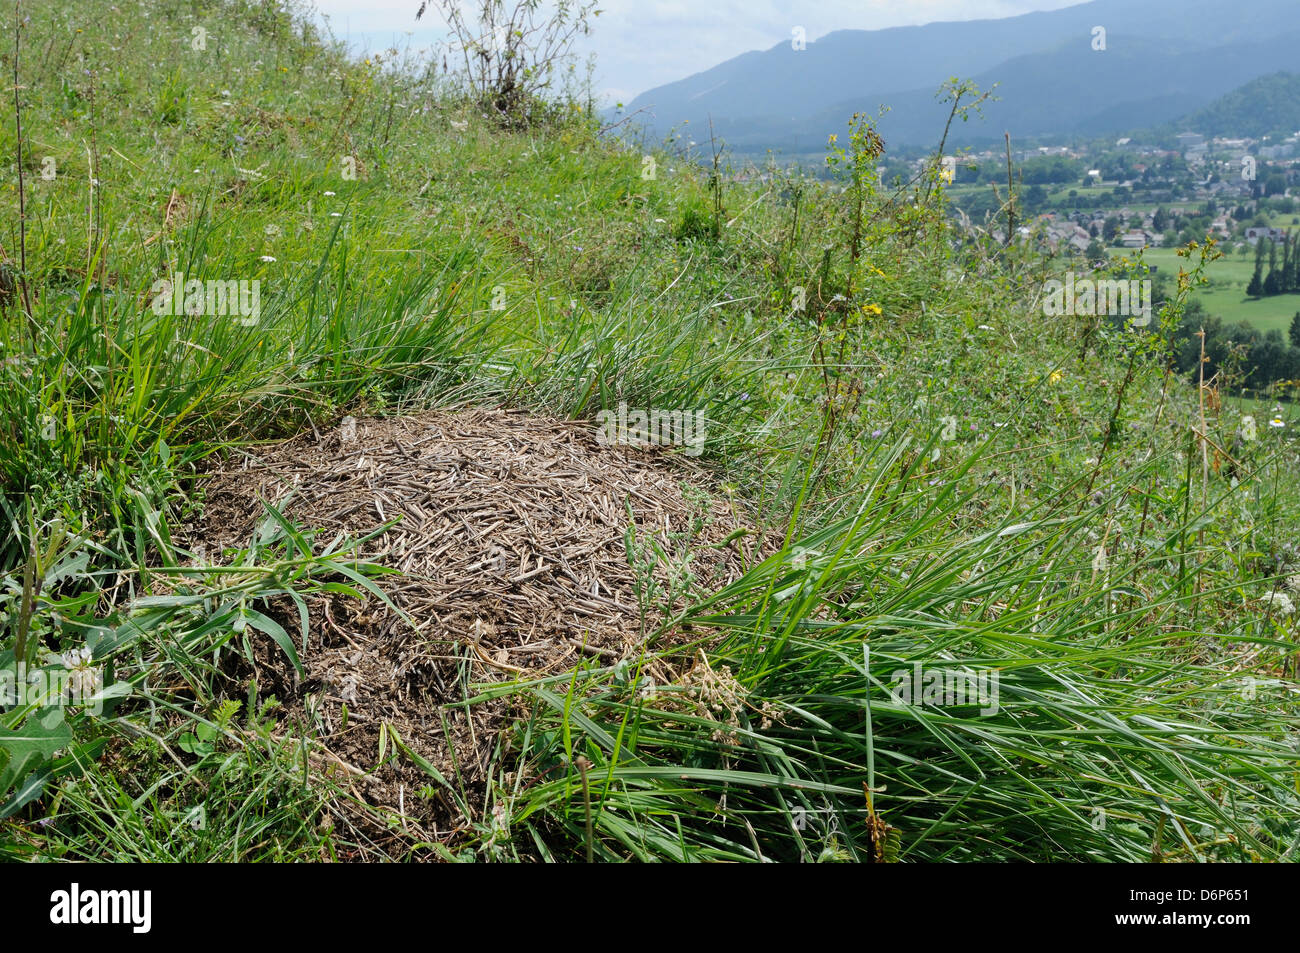 Black-backed meadow ant (Formica pratensis) nest mound of old grass stems in montane pastureland near Bled, Slovenia, - Stock Image